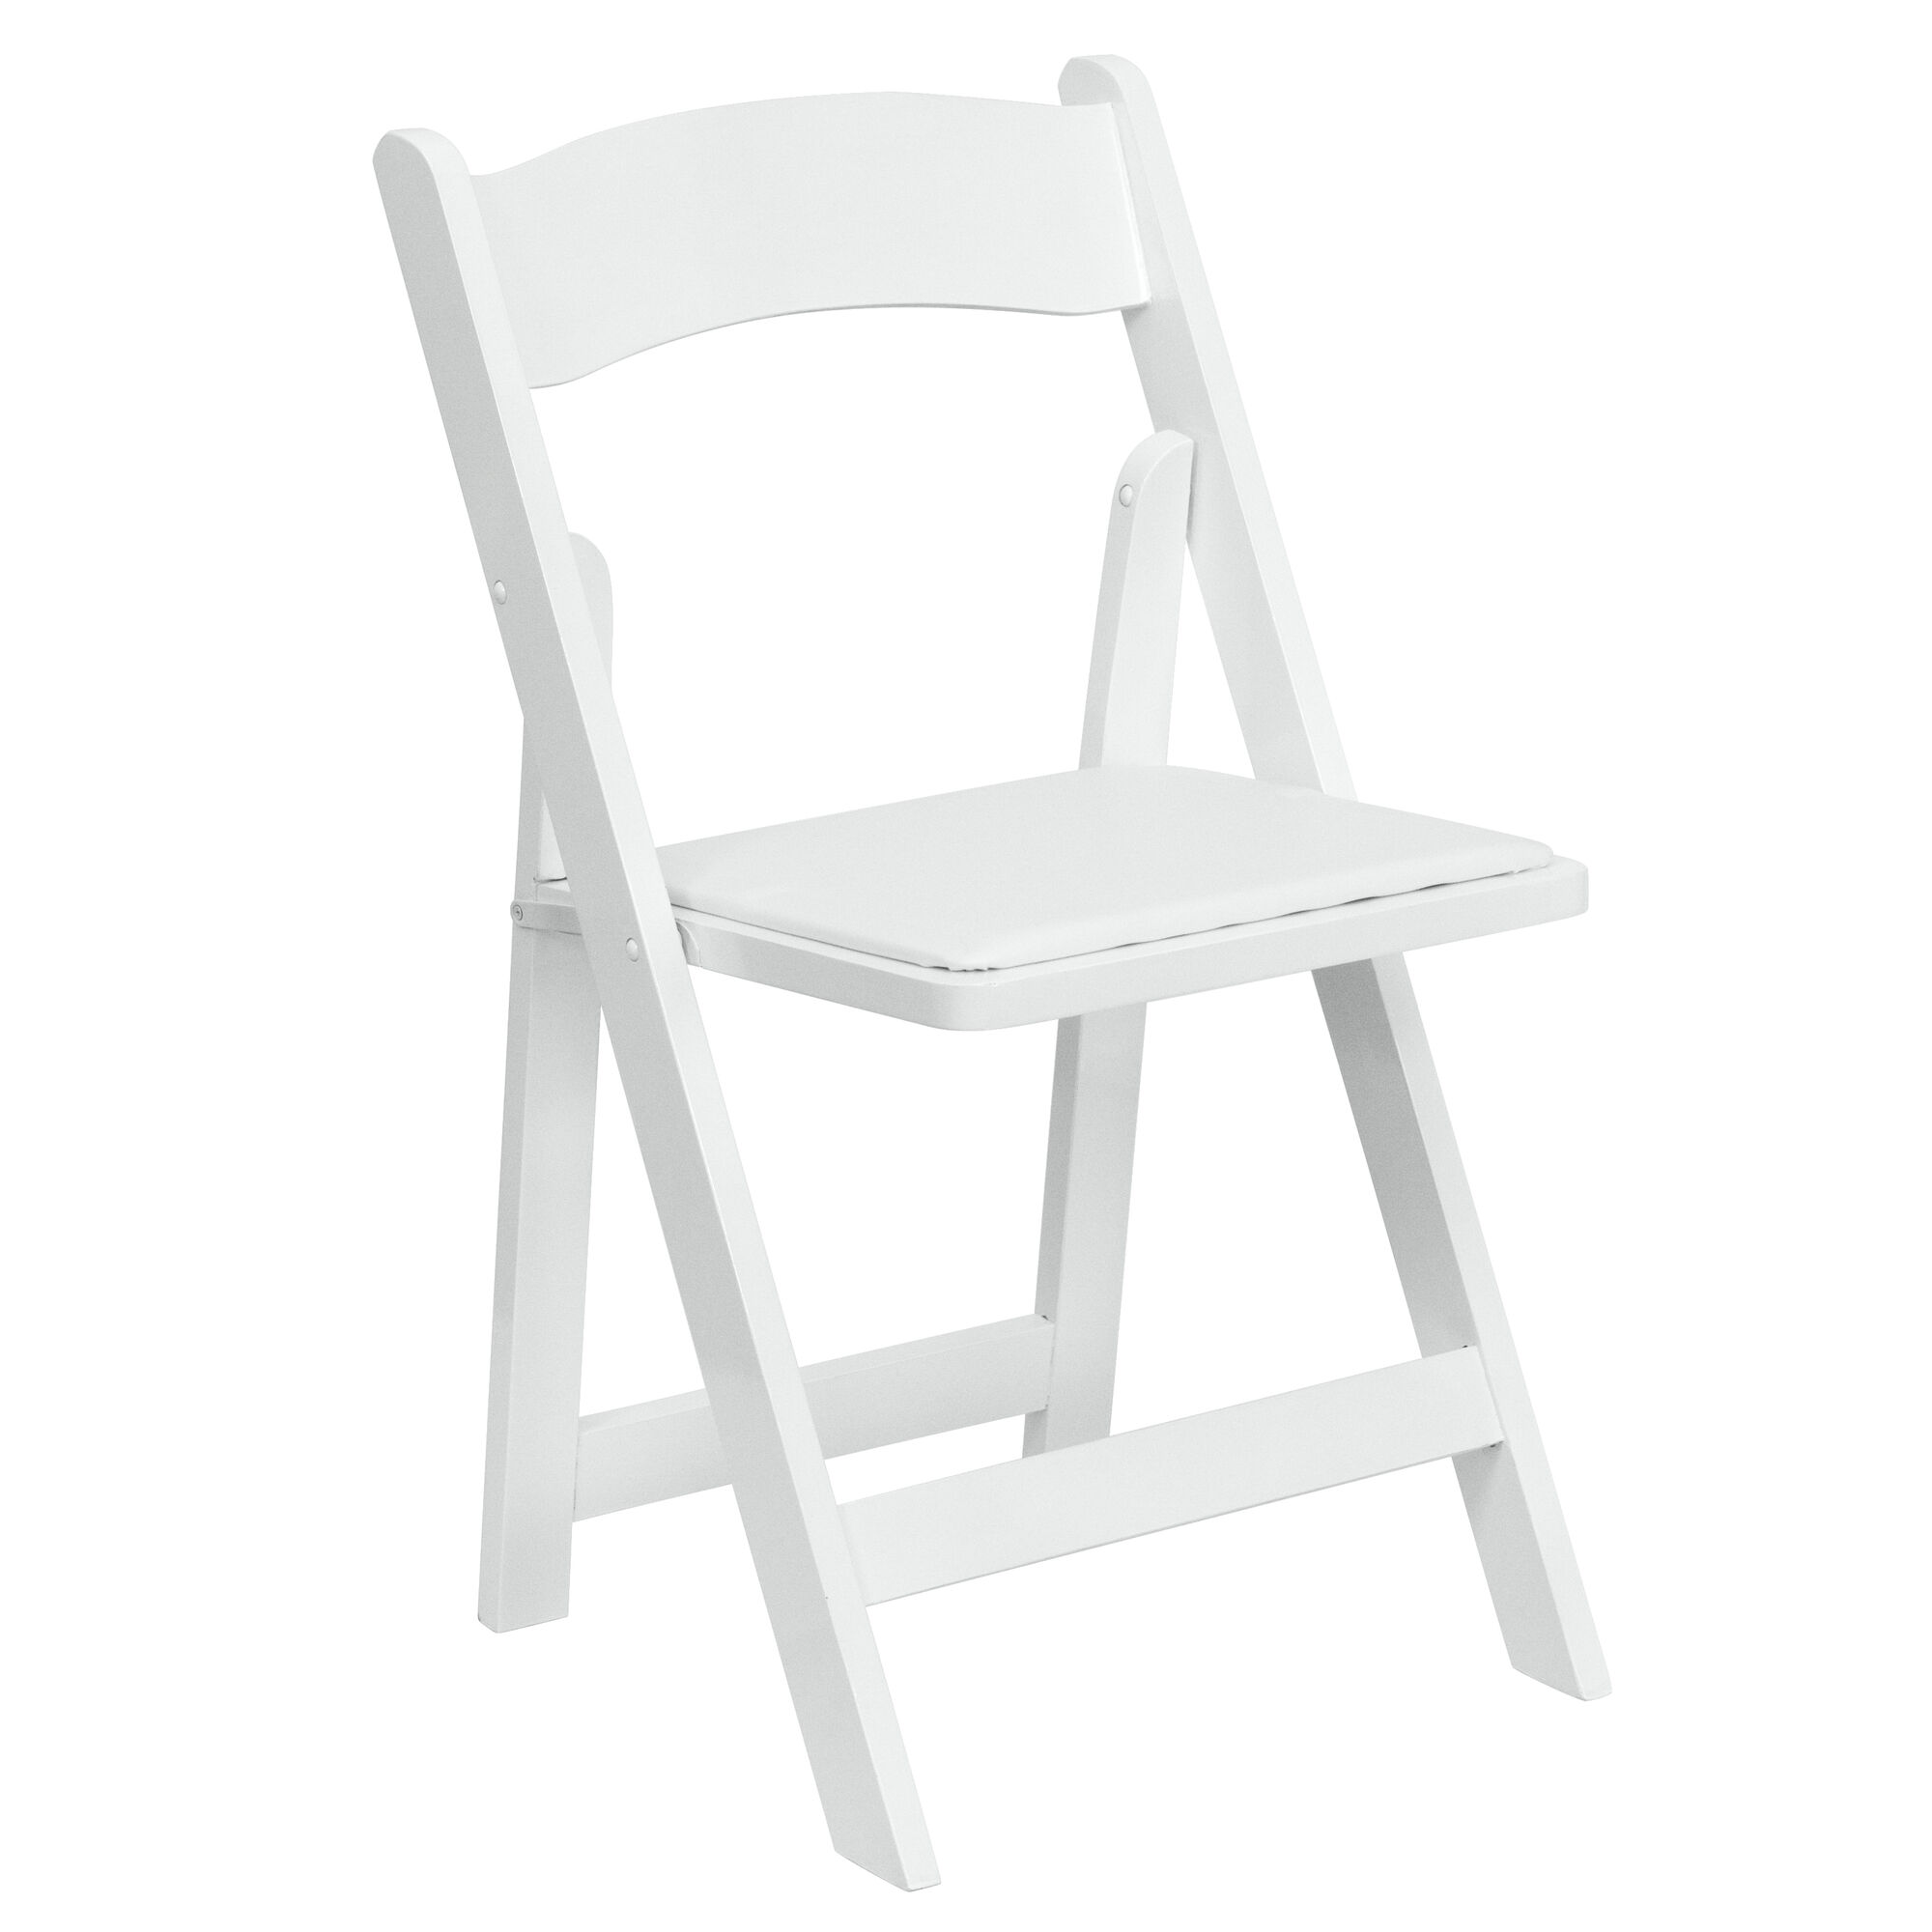 Swell Hercules Series White Wood Folding Chair With Vinyl Padded Seat Gmtry Best Dining Table And Chair Ideas Images Gmtryco